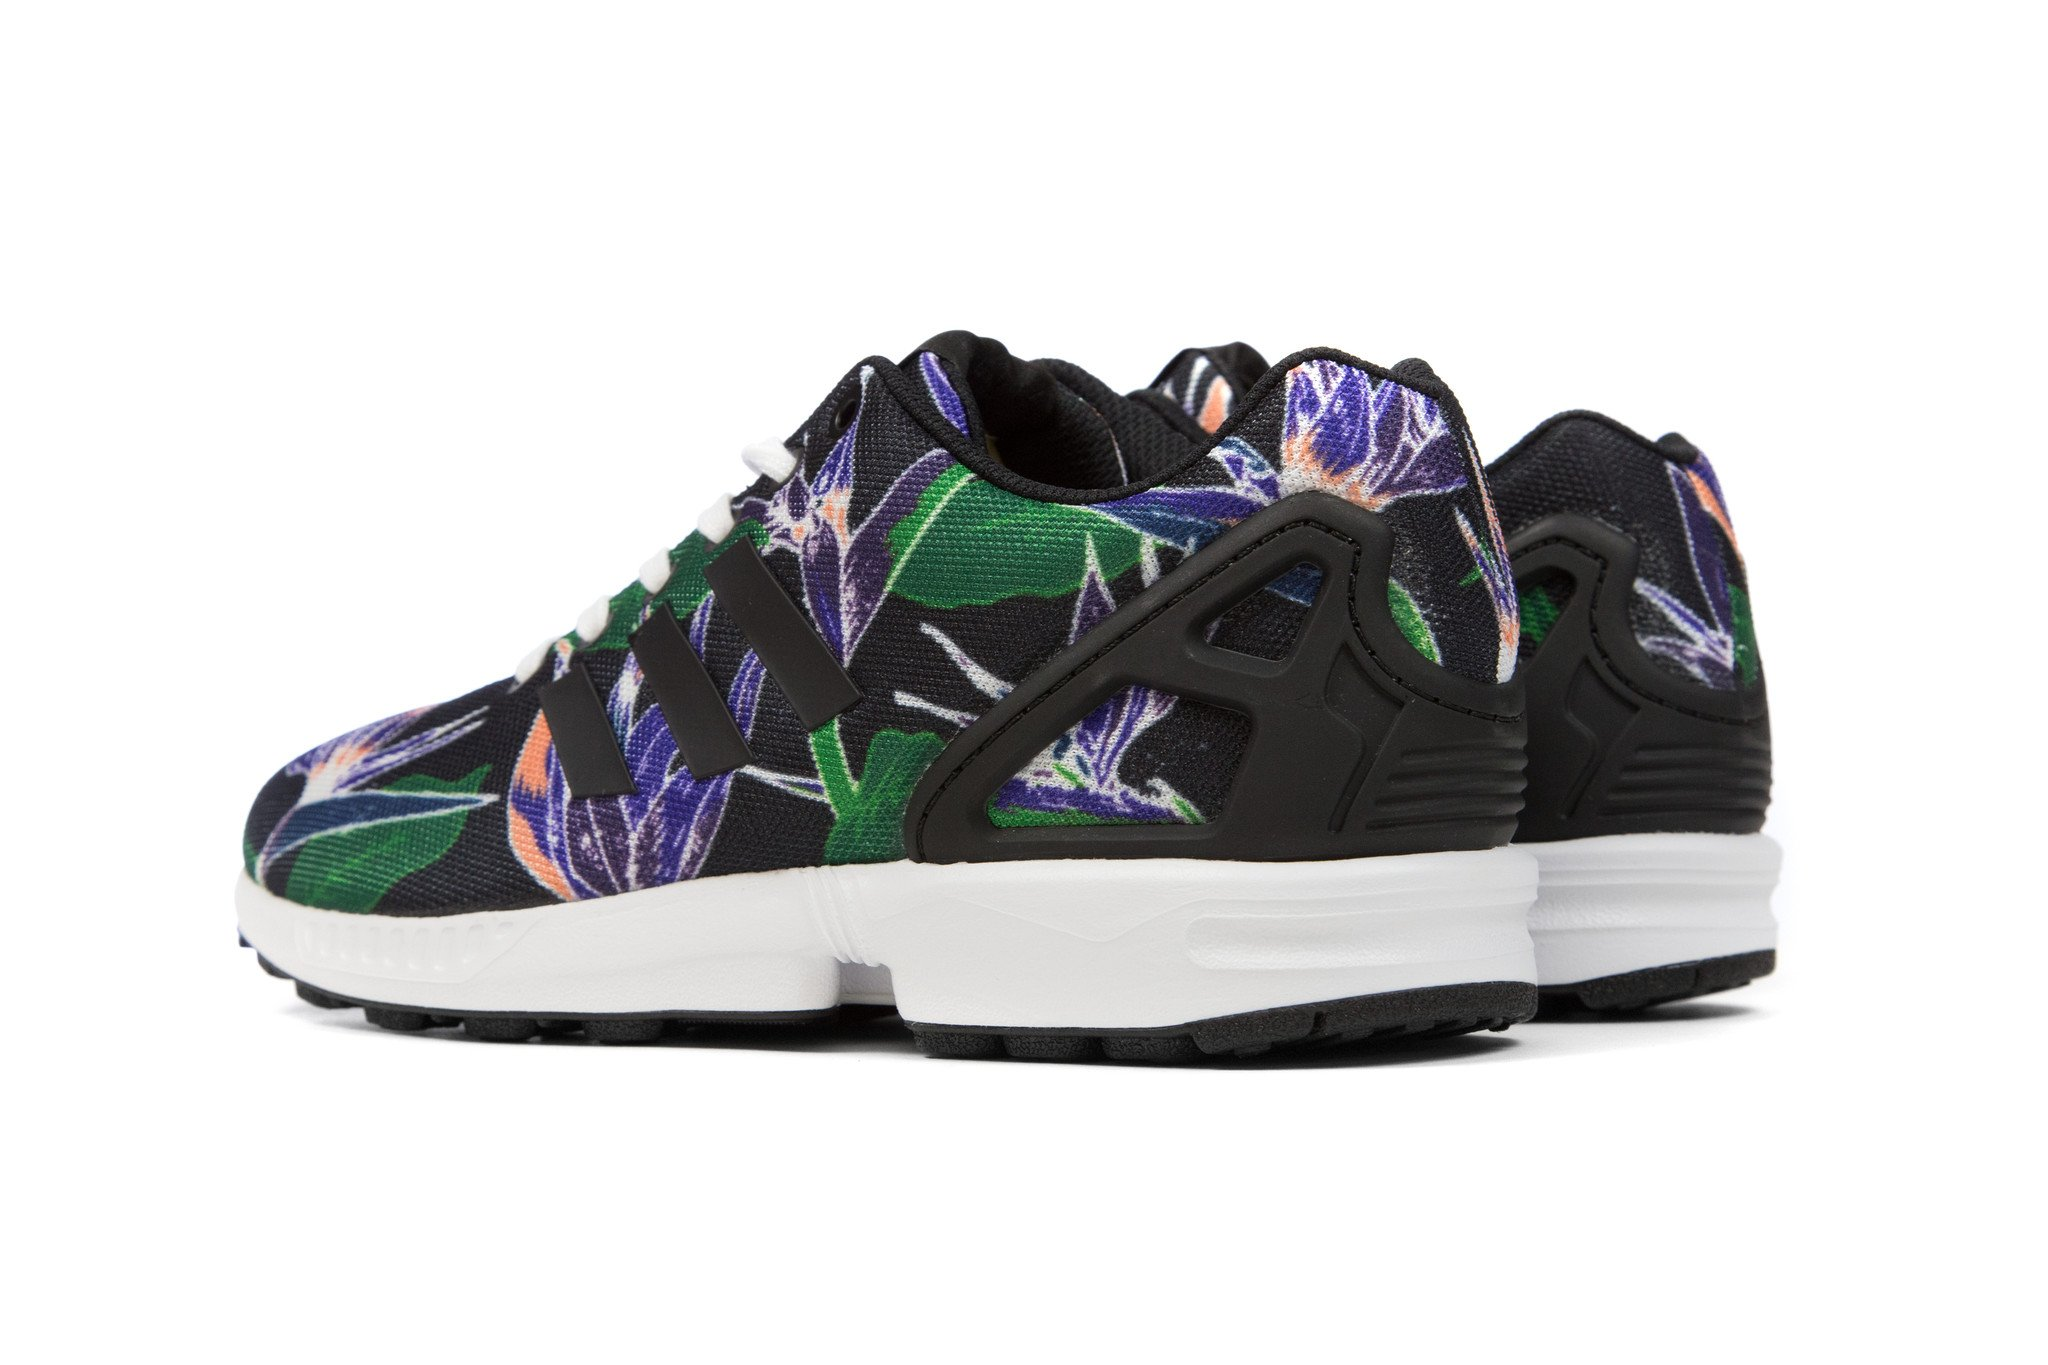 Adidas Floral Print   3m Sneakers   Zx Flux Floral